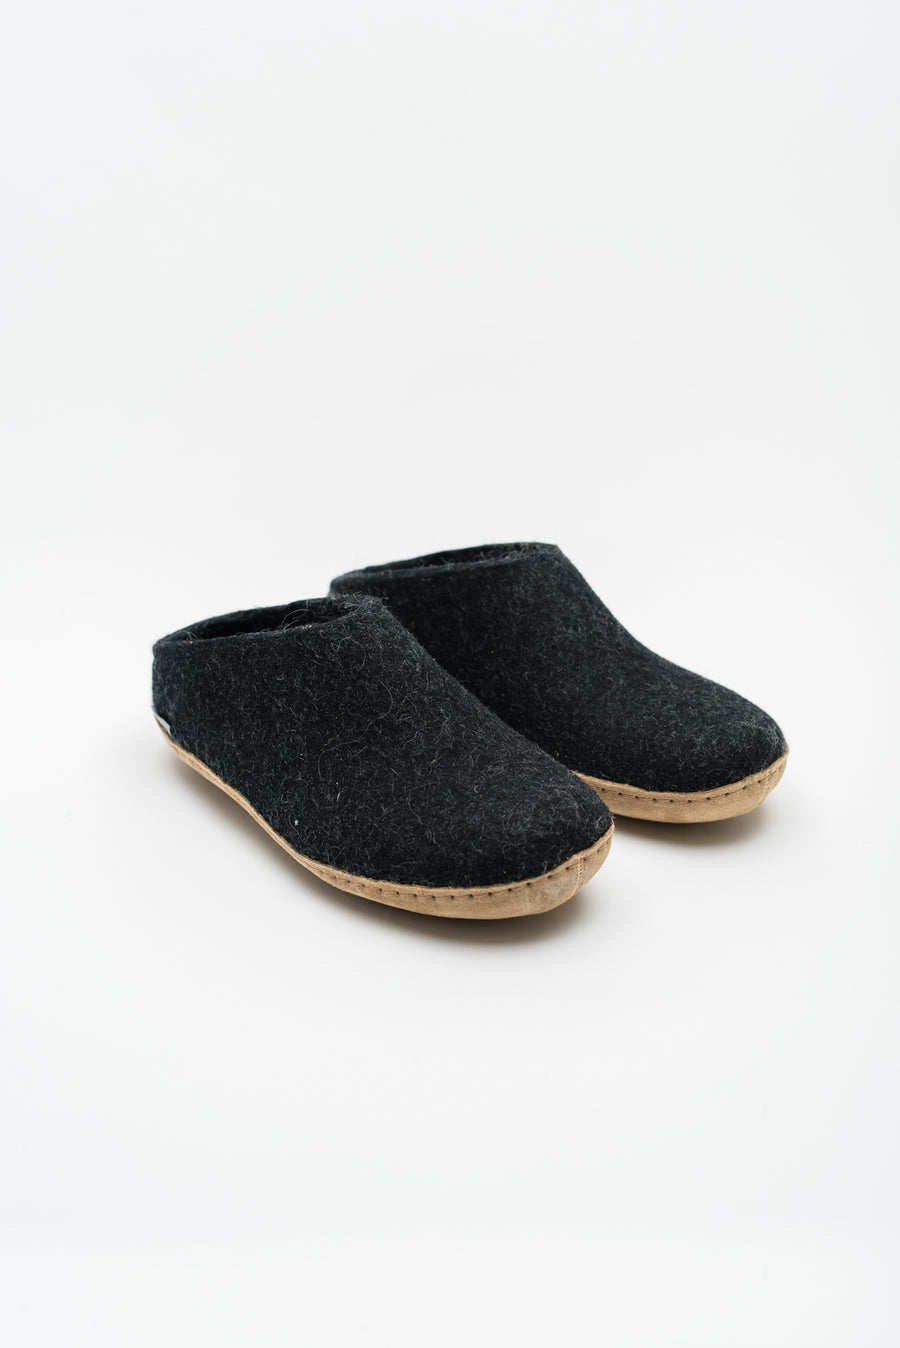 Men's Open Heel Slipper - Charcoal